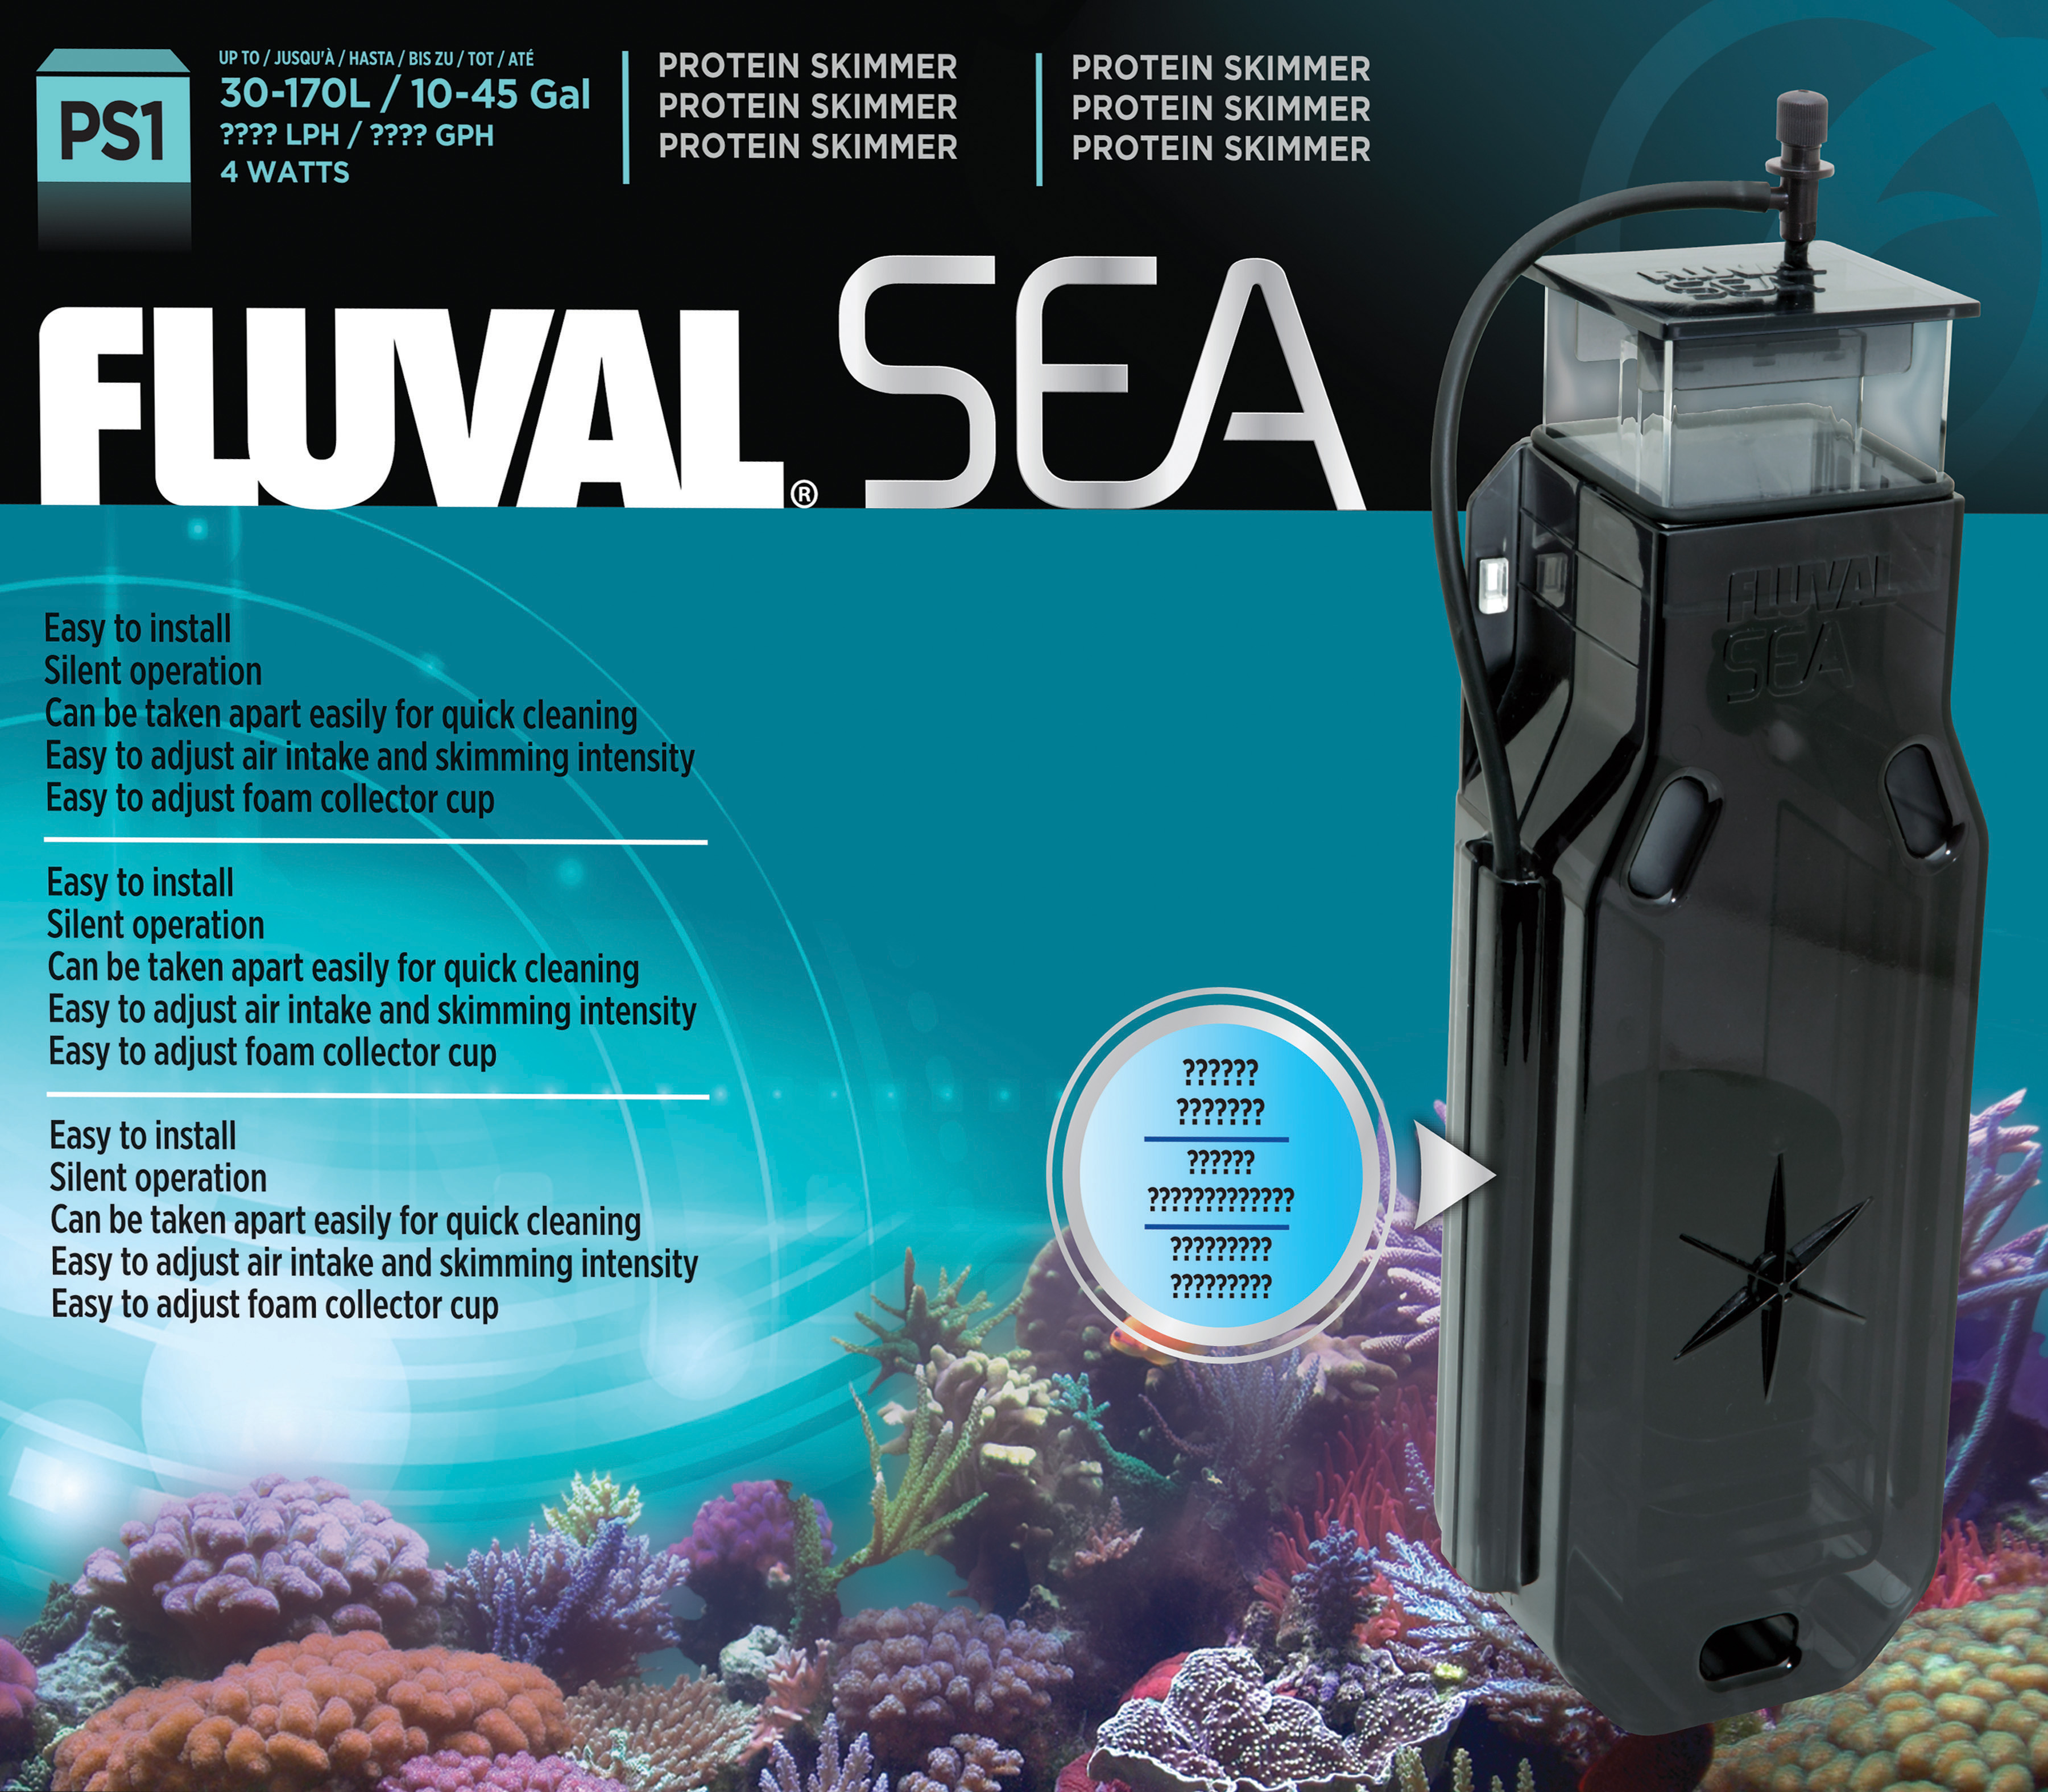 Fluval Sea Protein Skimmer (PS1)